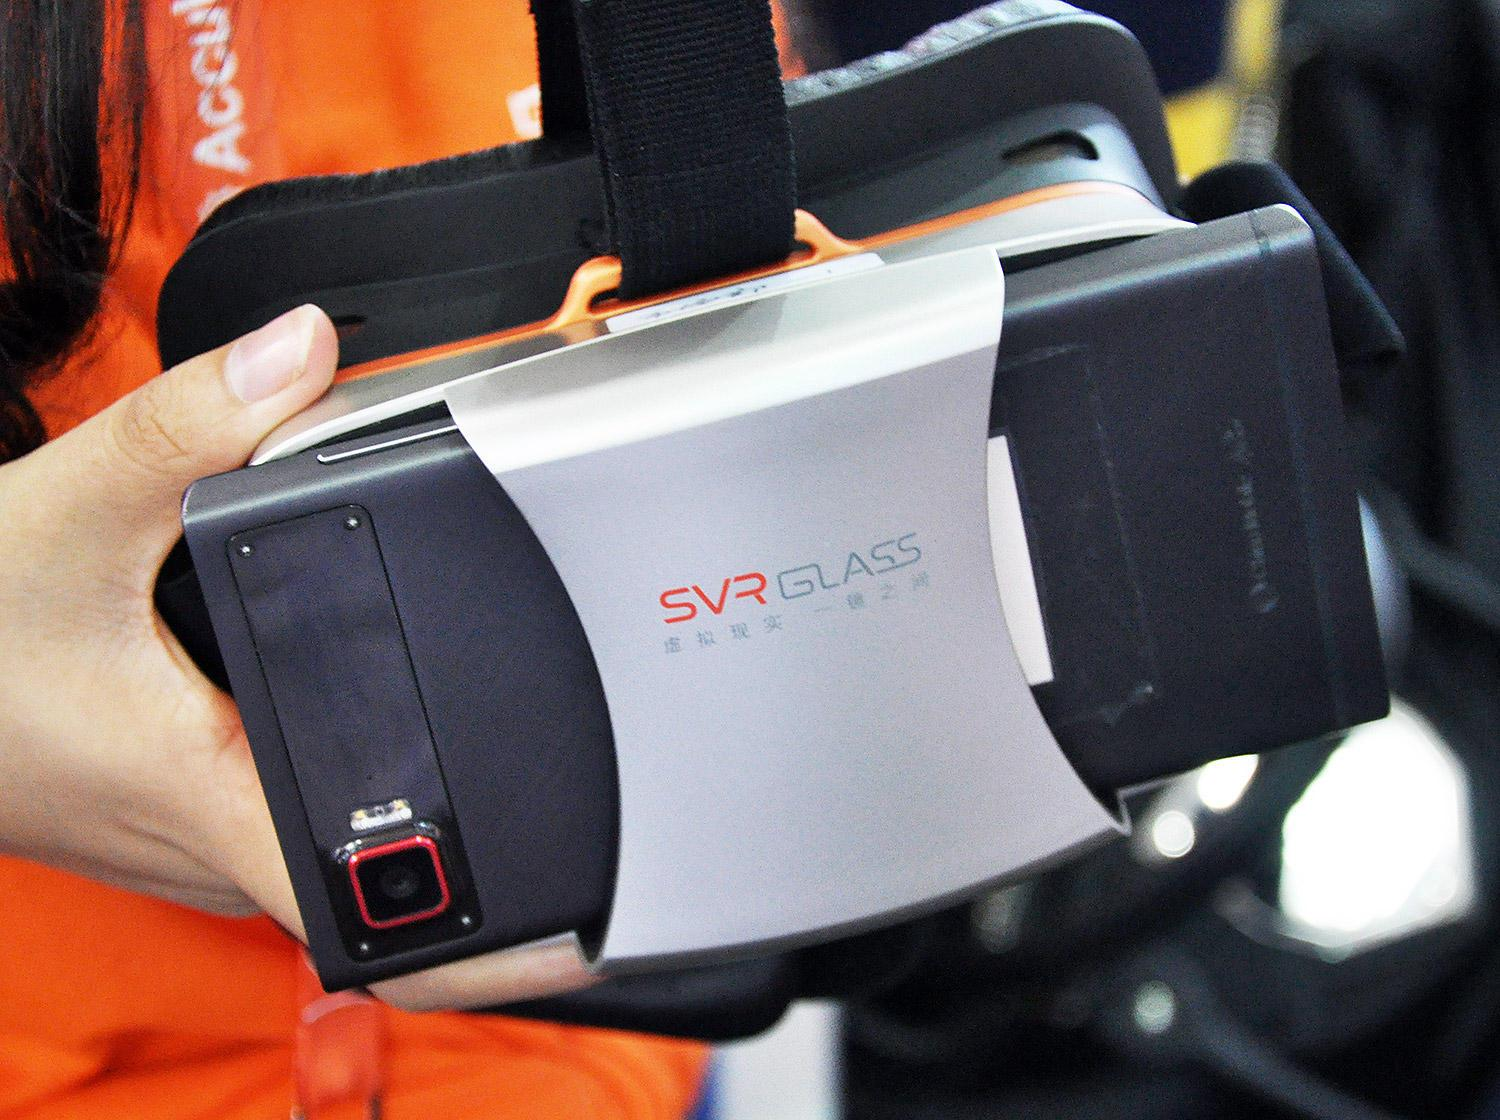 Meet the SVR Glass headset, a cheaper Galaxy Gear VR